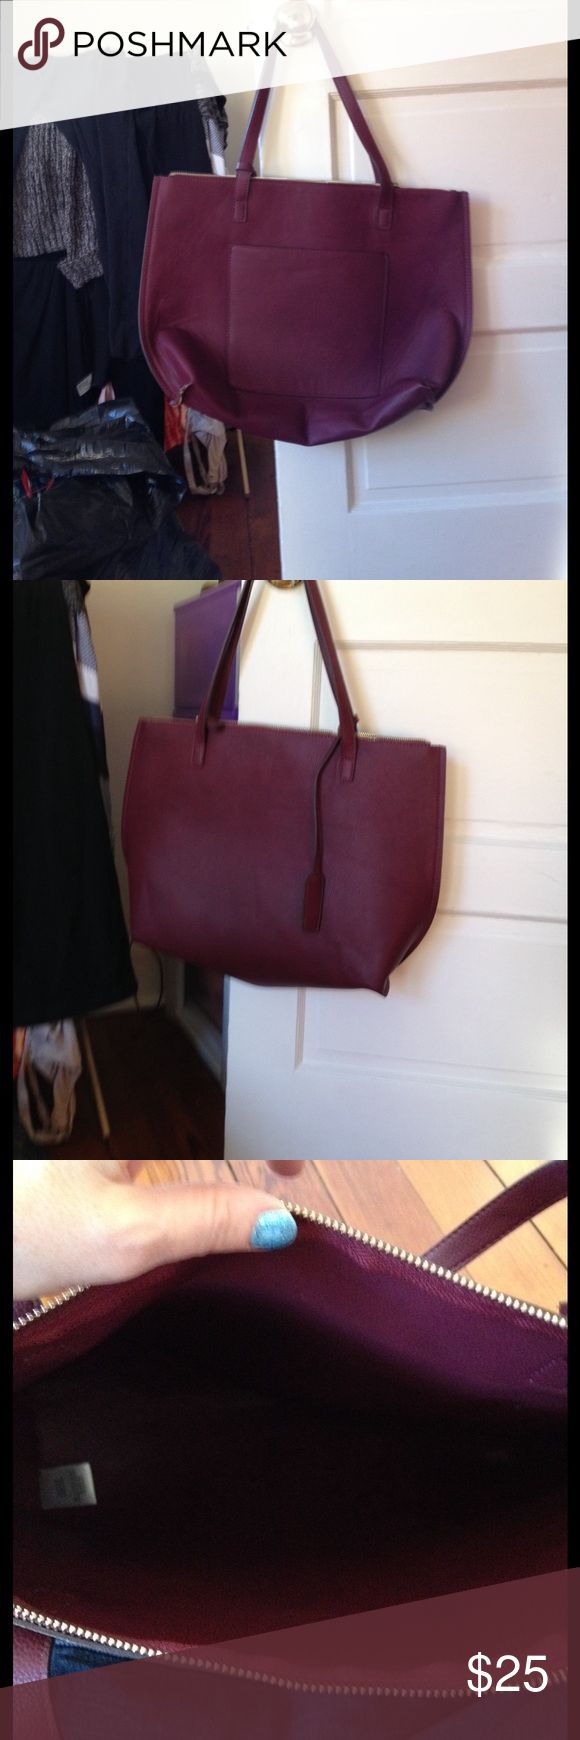 American Eagle Shopper Tote American eagle shopper tote. Burgundy! One big bag that zippers. One pocket in the front  none in the bag. One big bag. Only used a few times. In excellent condition. American Eagle Outfitters Bags Totes